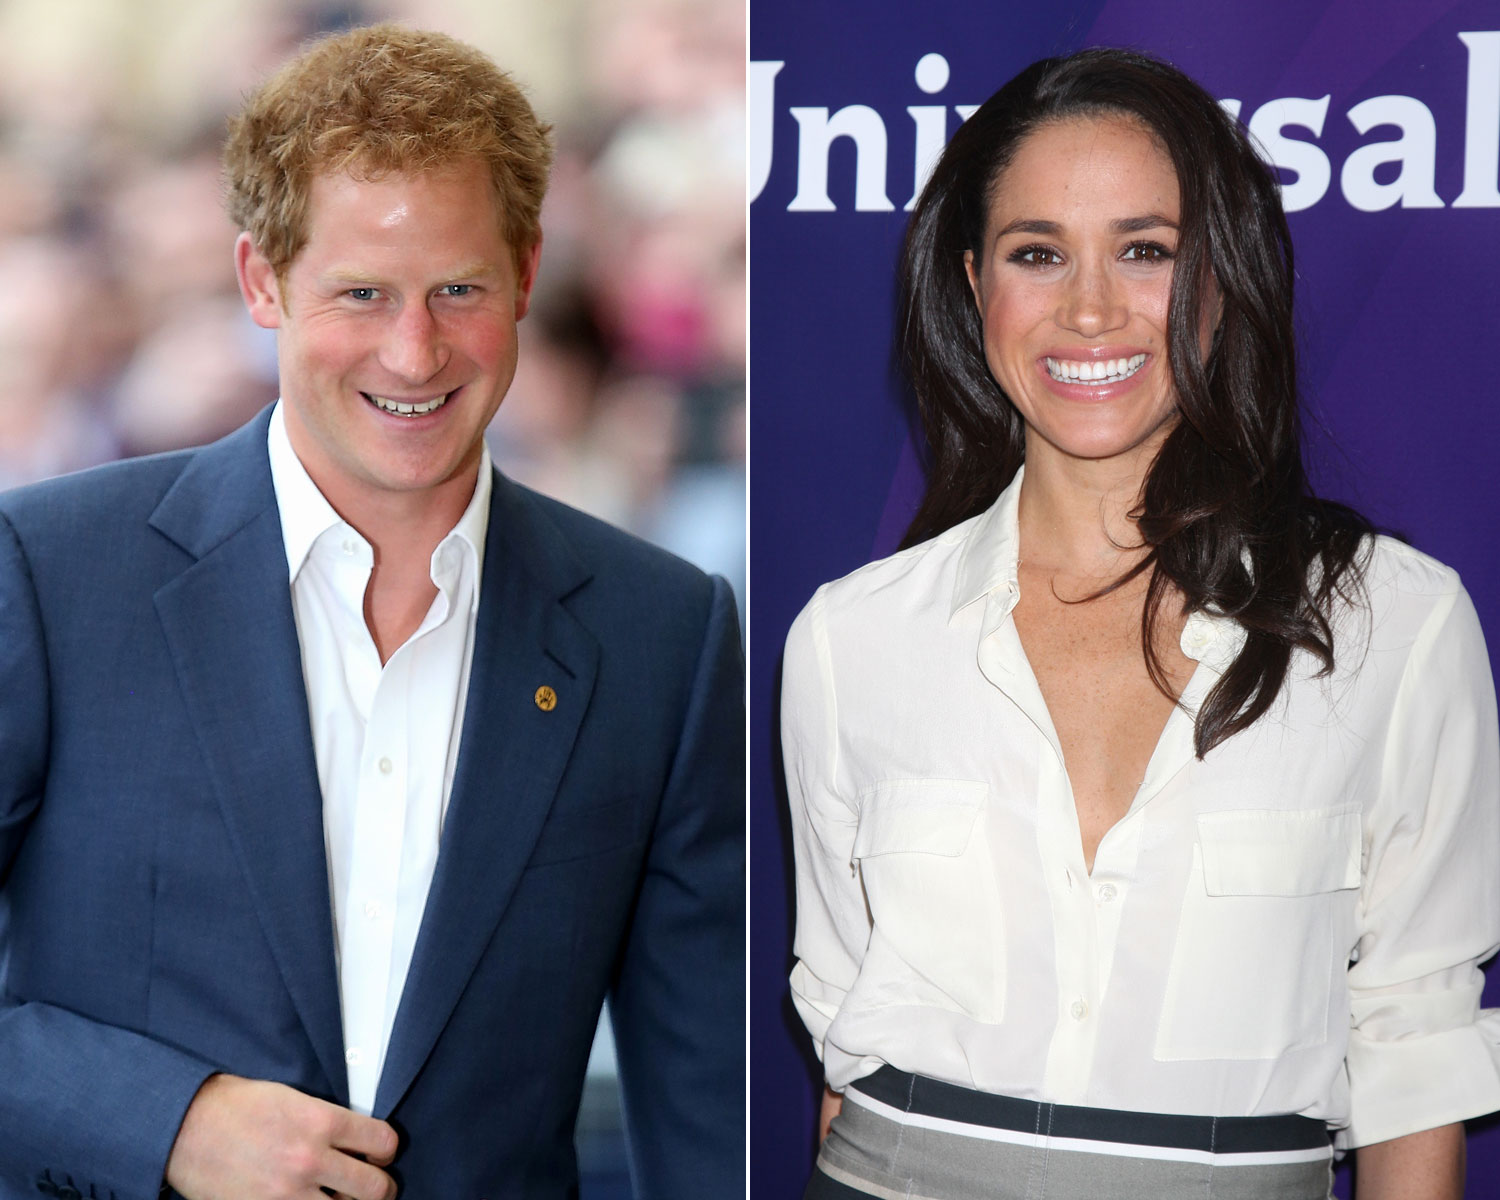 Meghan Markle Pippa Wedding.Meghan Markle Is Invited To Pippa Middleton S Wedding